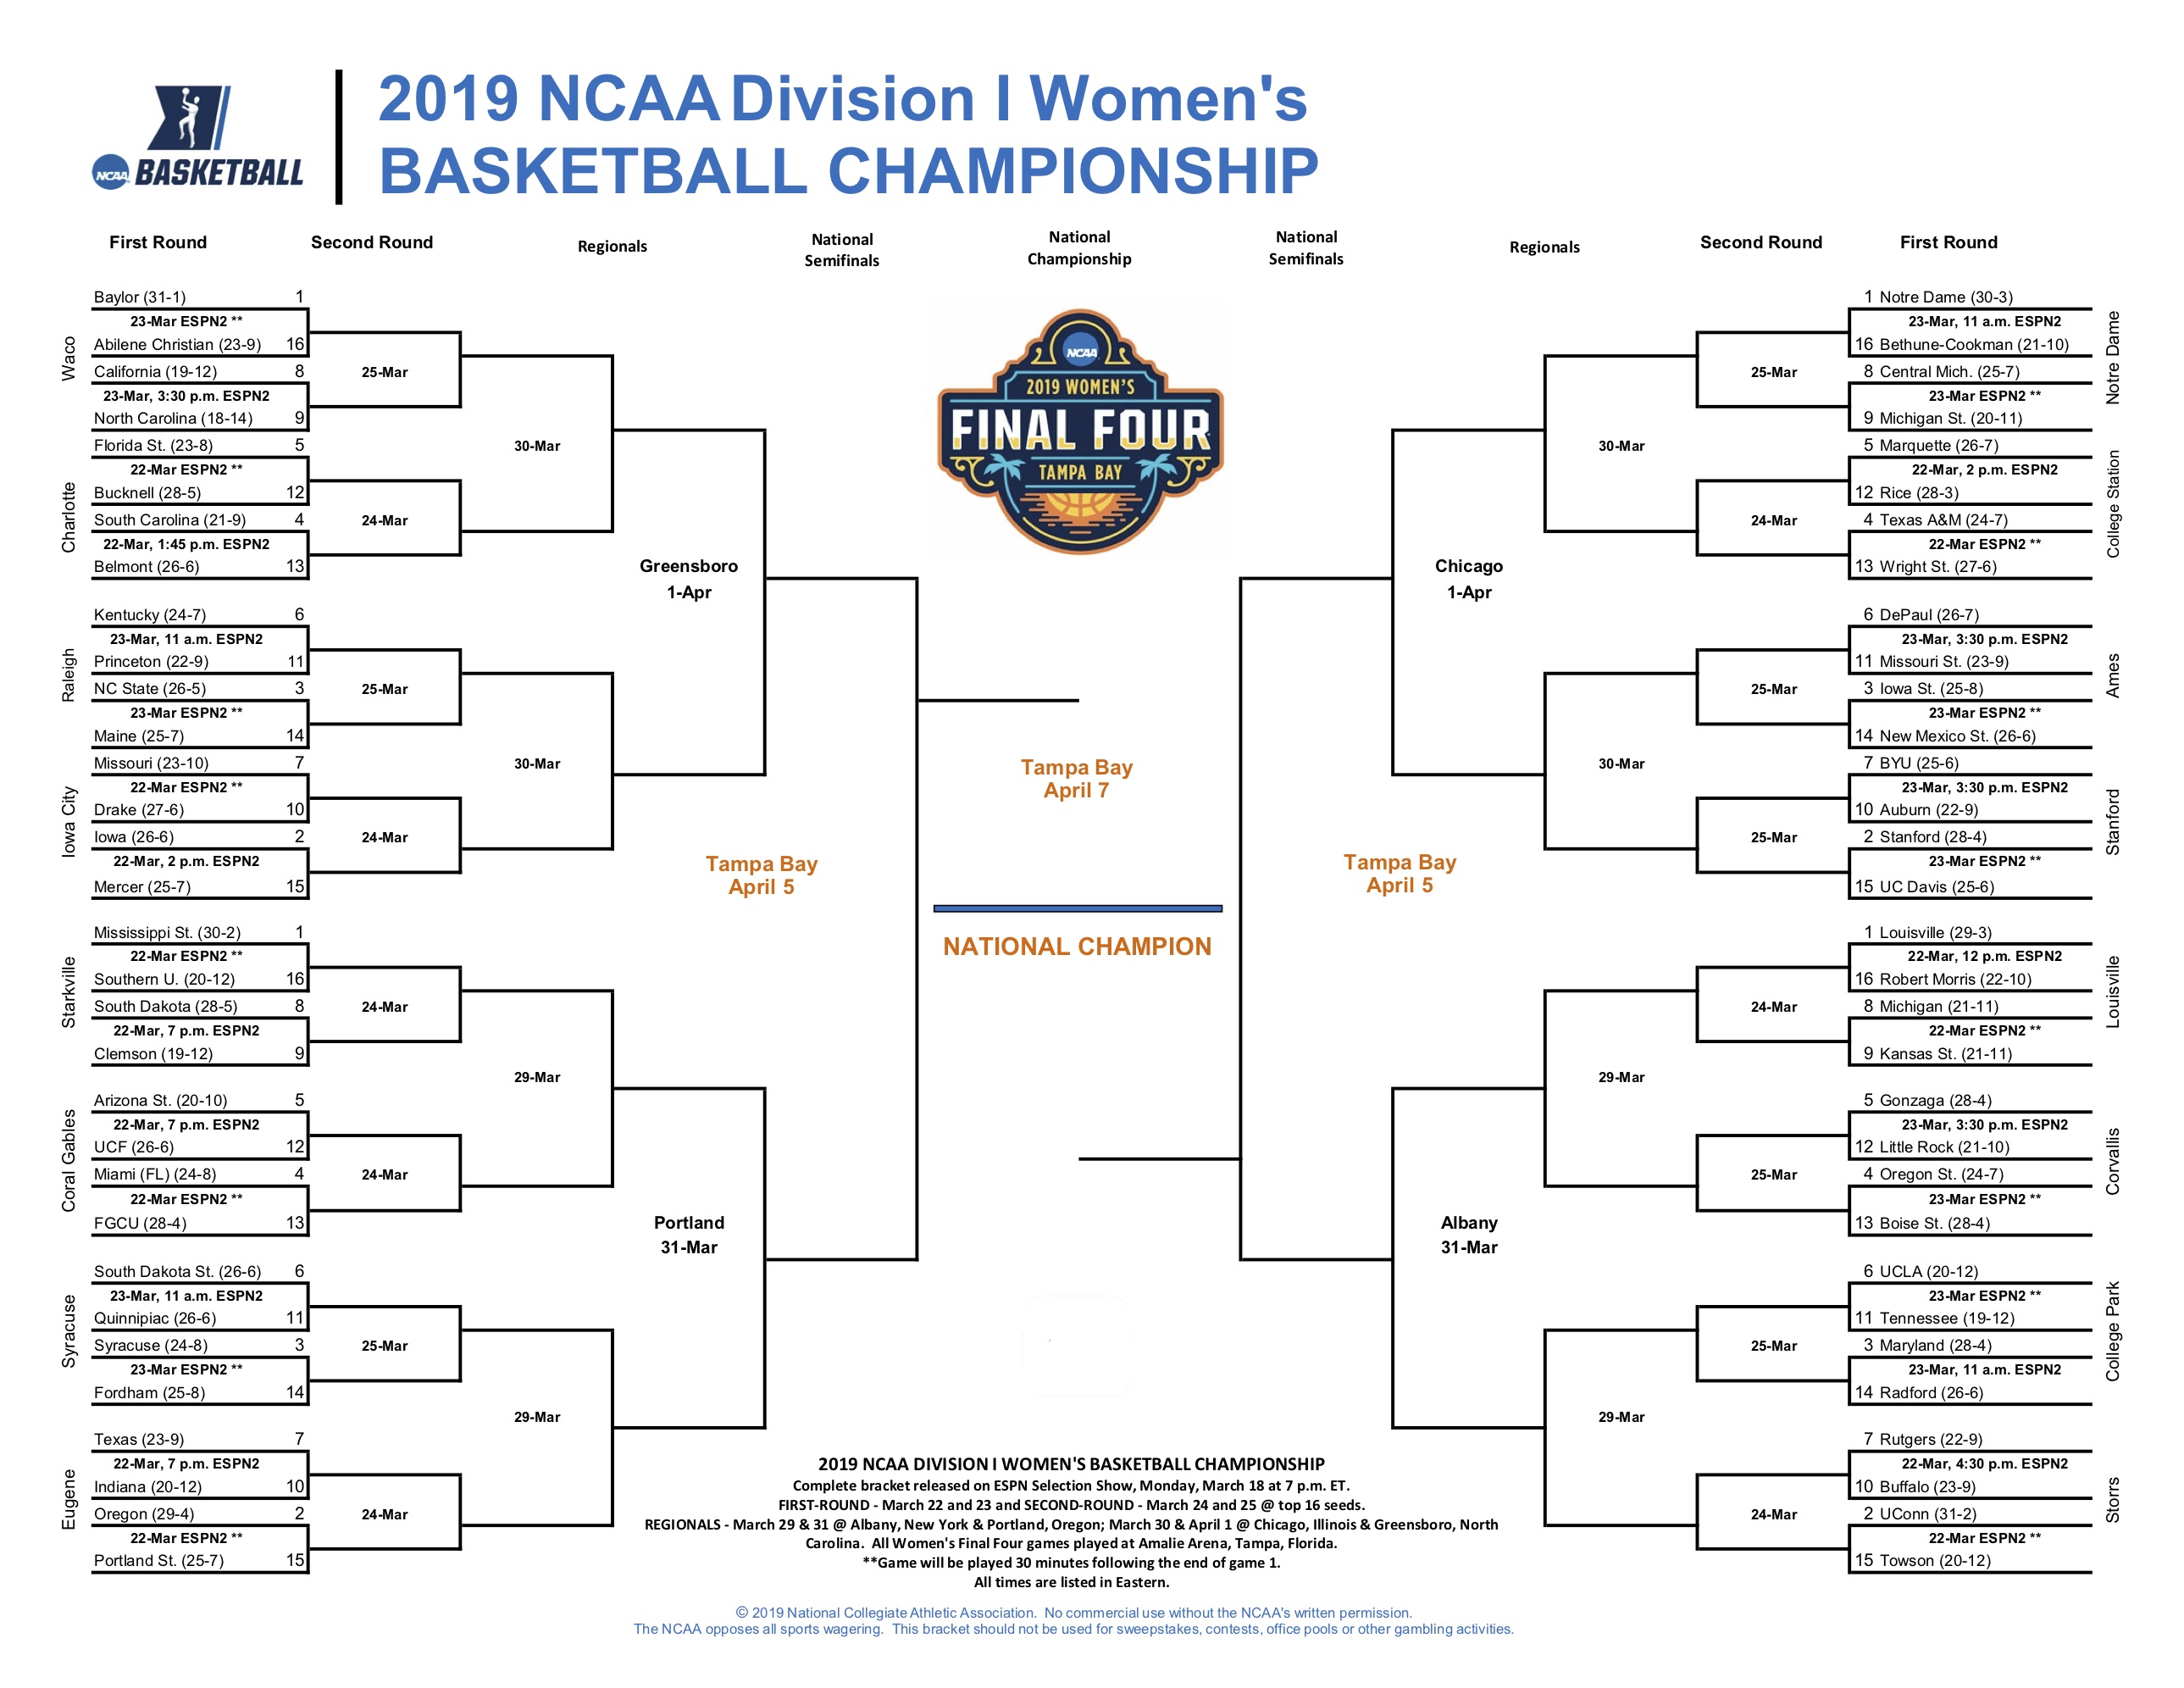 The Women's NCAA Tournament